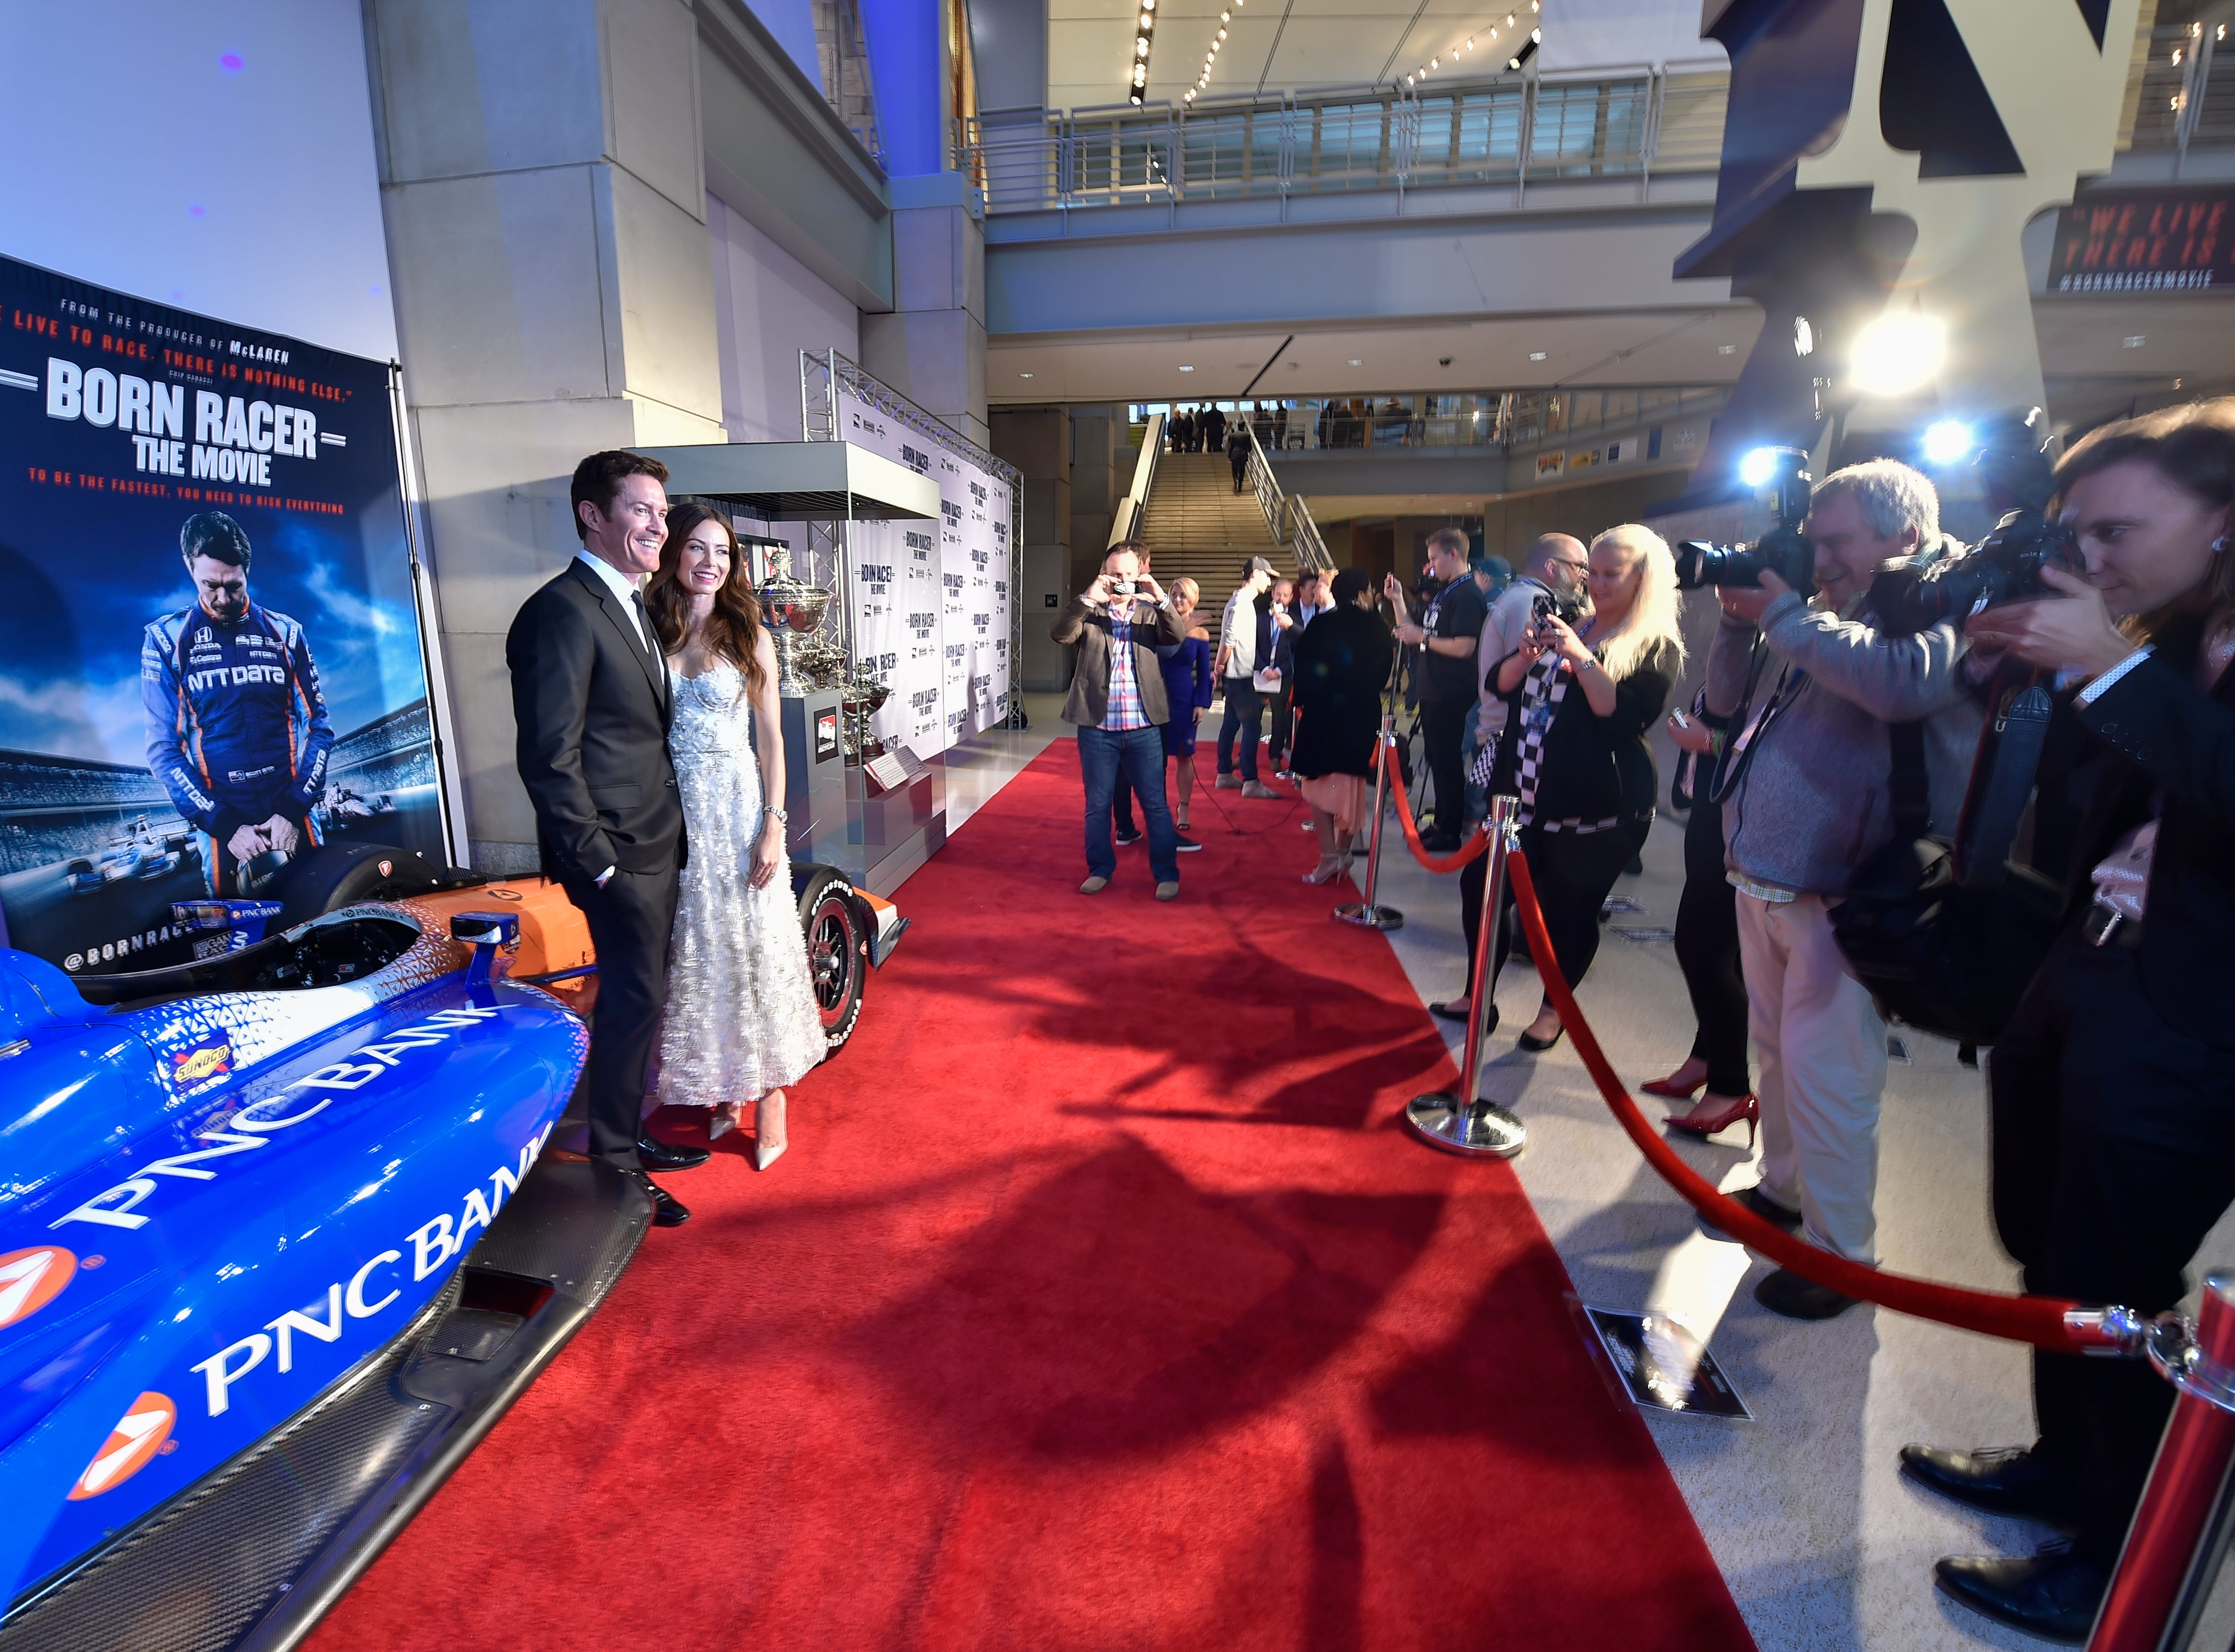 Inside the premiere of 'Born Racer,' a story about IndyCar driver Scott Dixon, at the IMAX theater at the Indiana State Museum on Monday, Sept. 24, 2018.